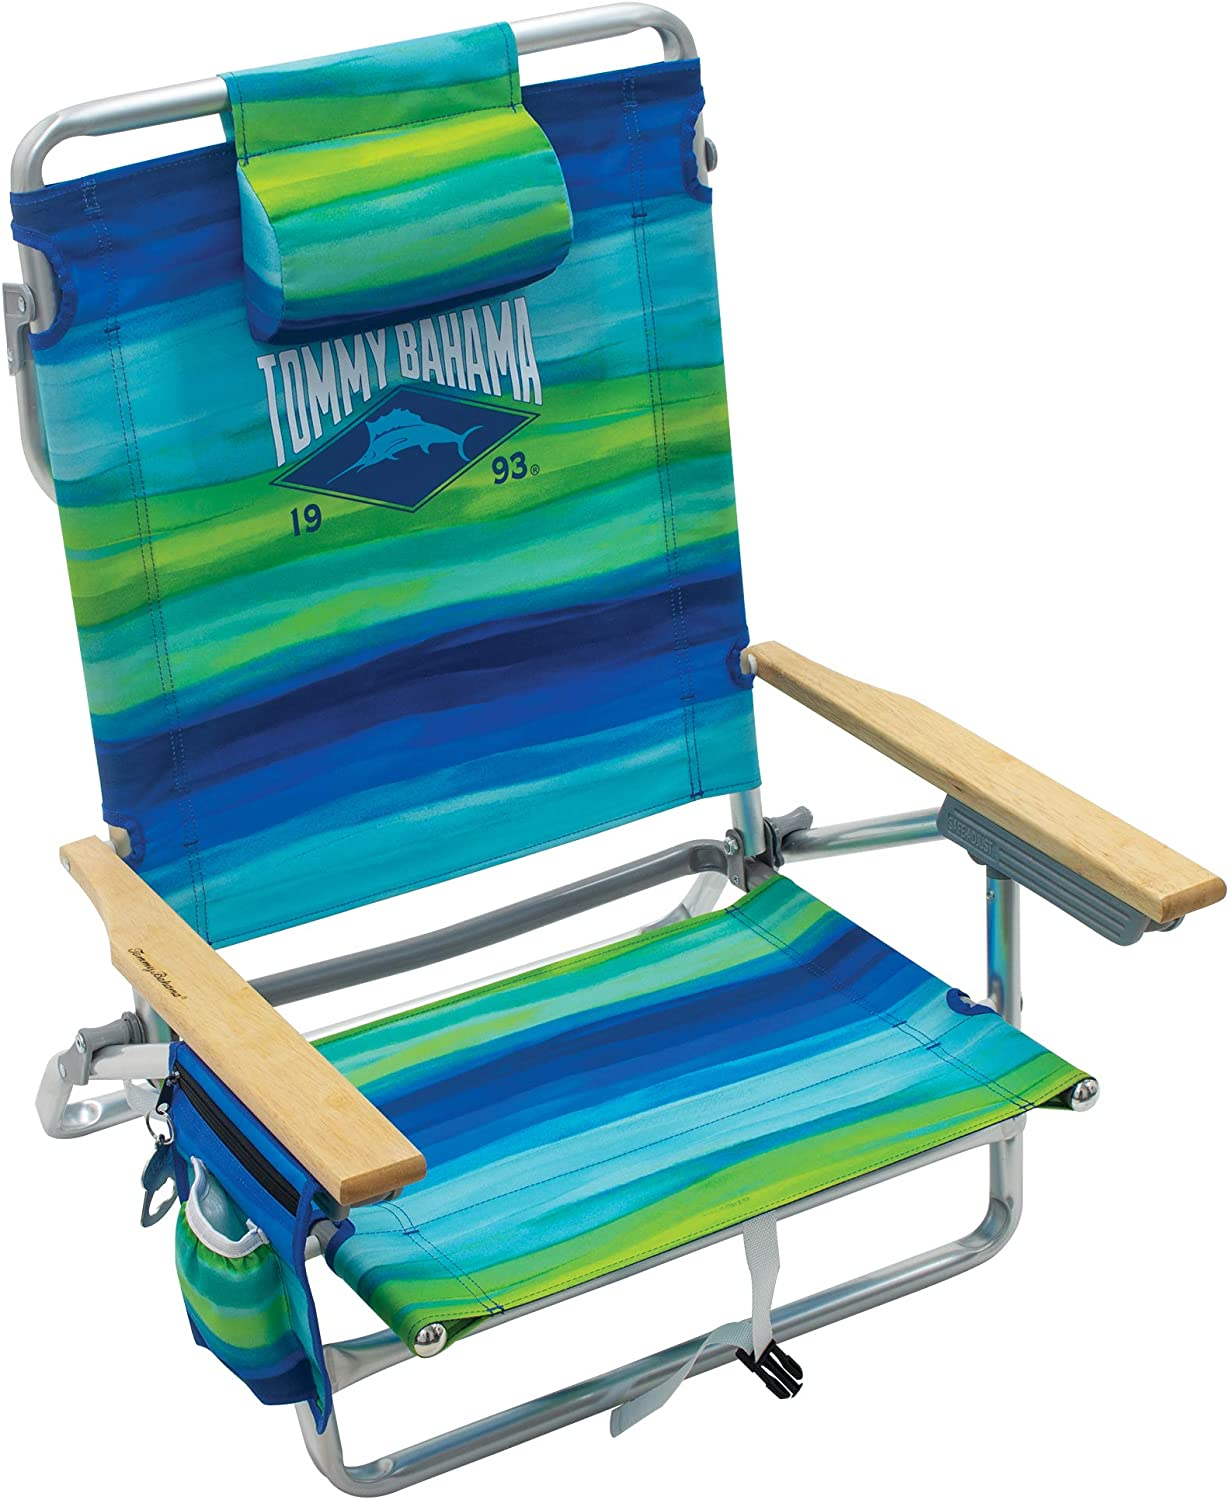 Tommy Bahama 5-Position Foldable Beach Chair